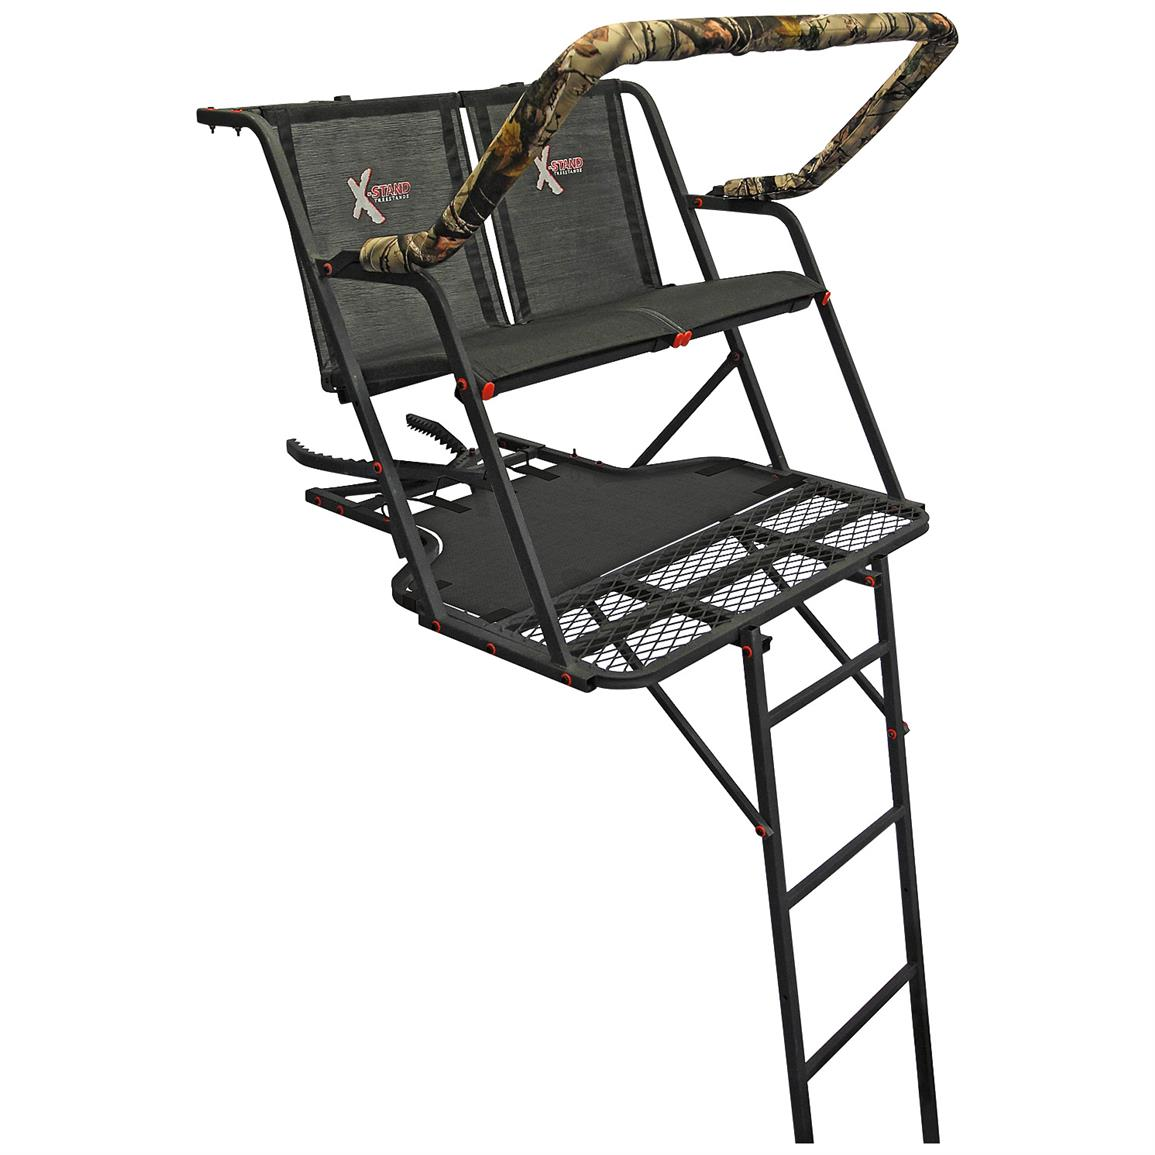 X-Stand Outback 16 foot Ladder Tree Stand, 2-Person